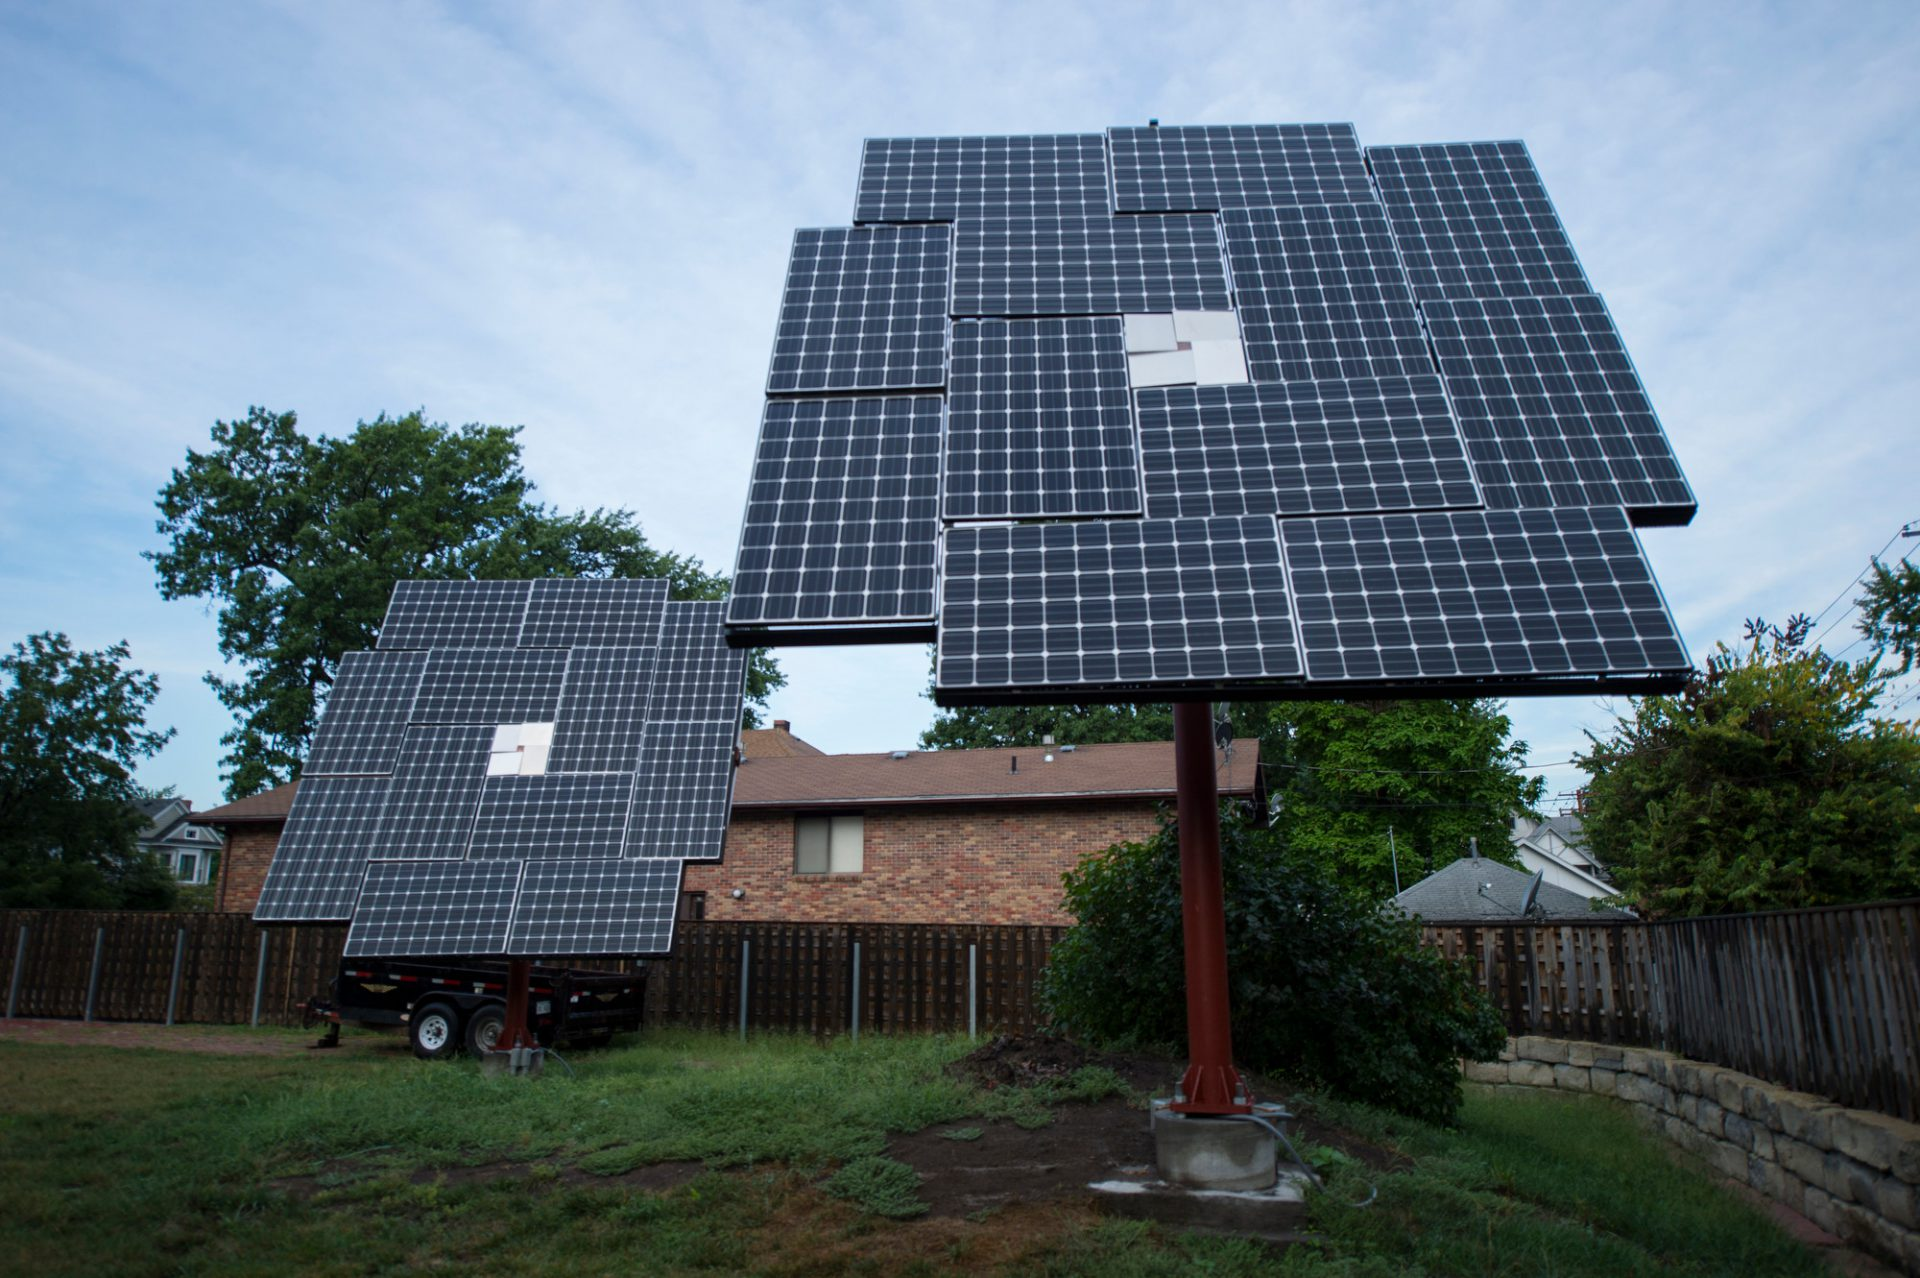 Photo: Solar panels in a backyard.